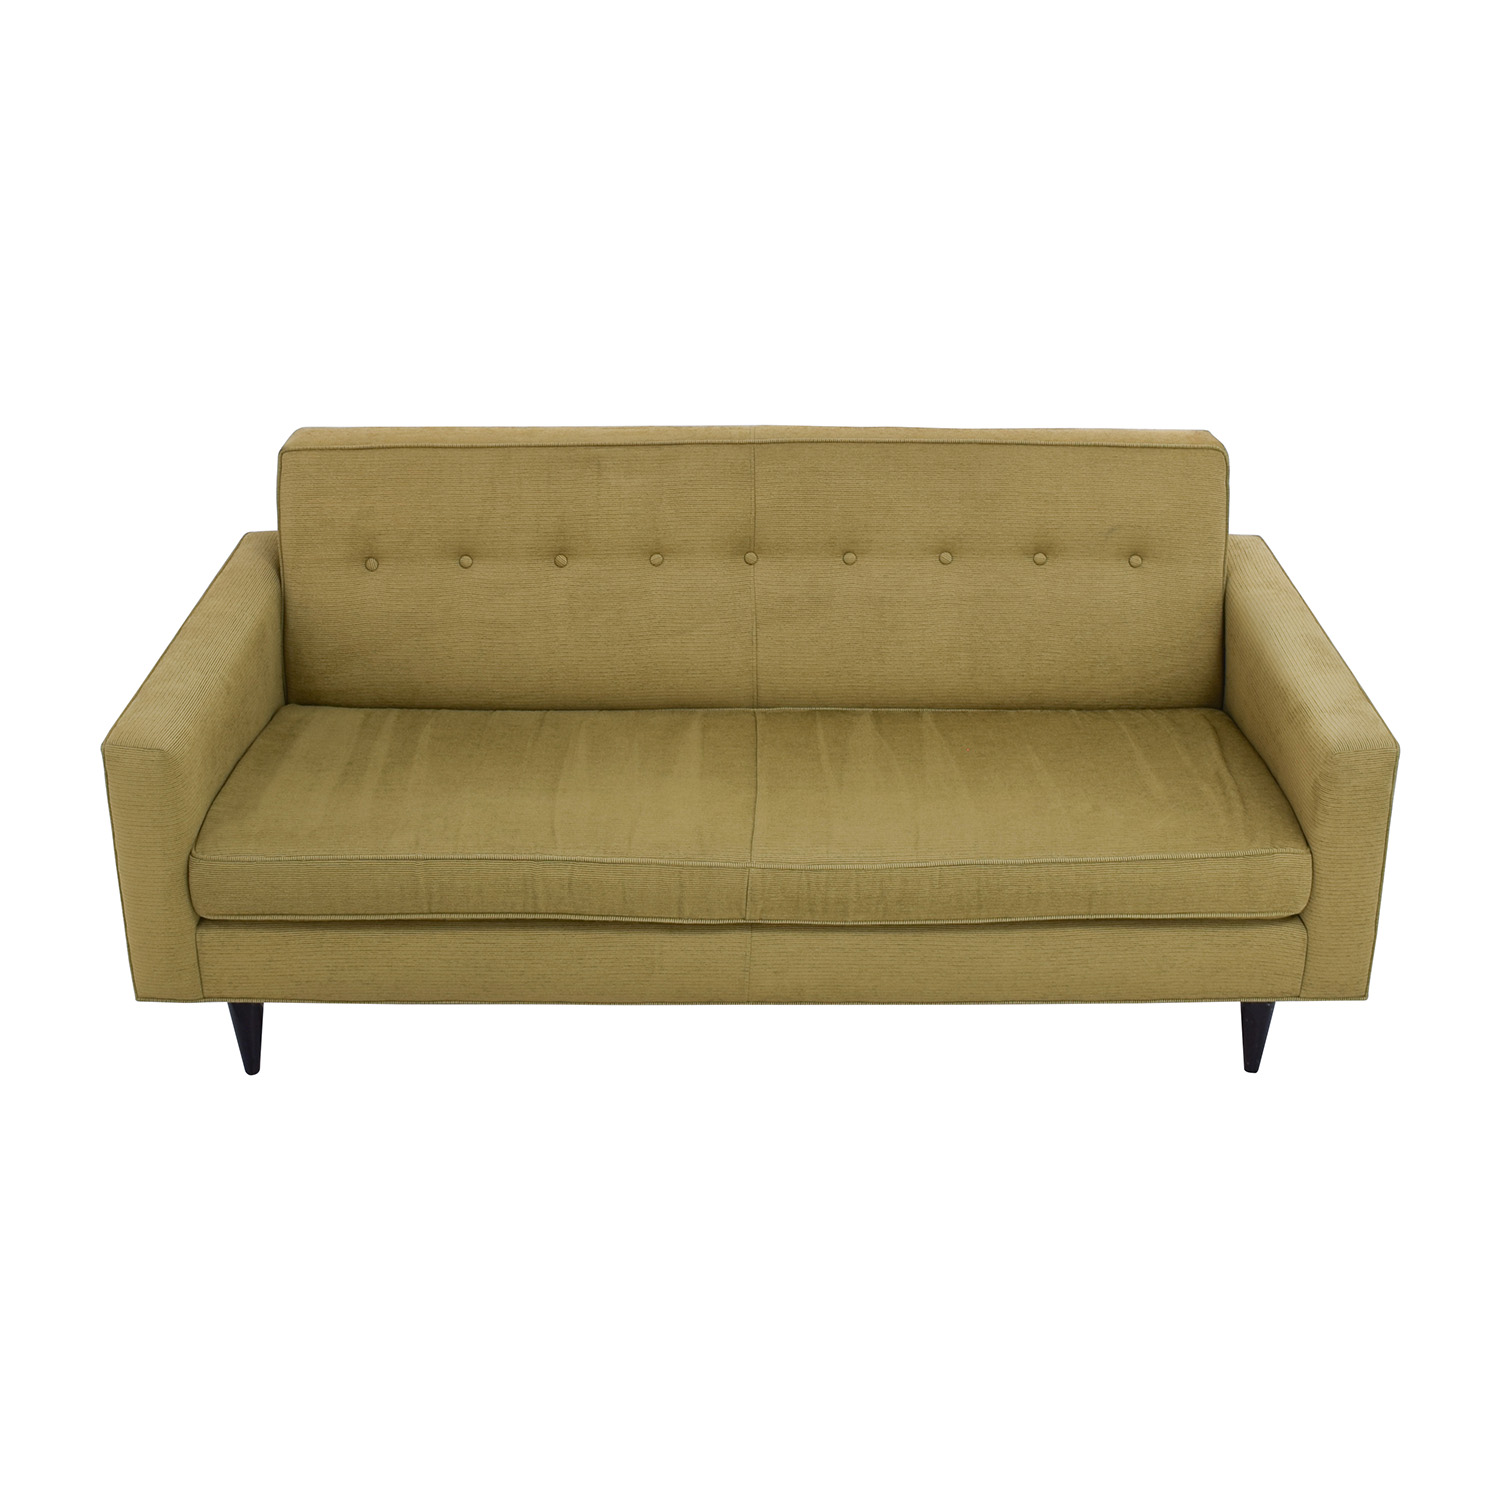 shop Design Within Reach Bantam Tufted Green Sofa Design Within Reach